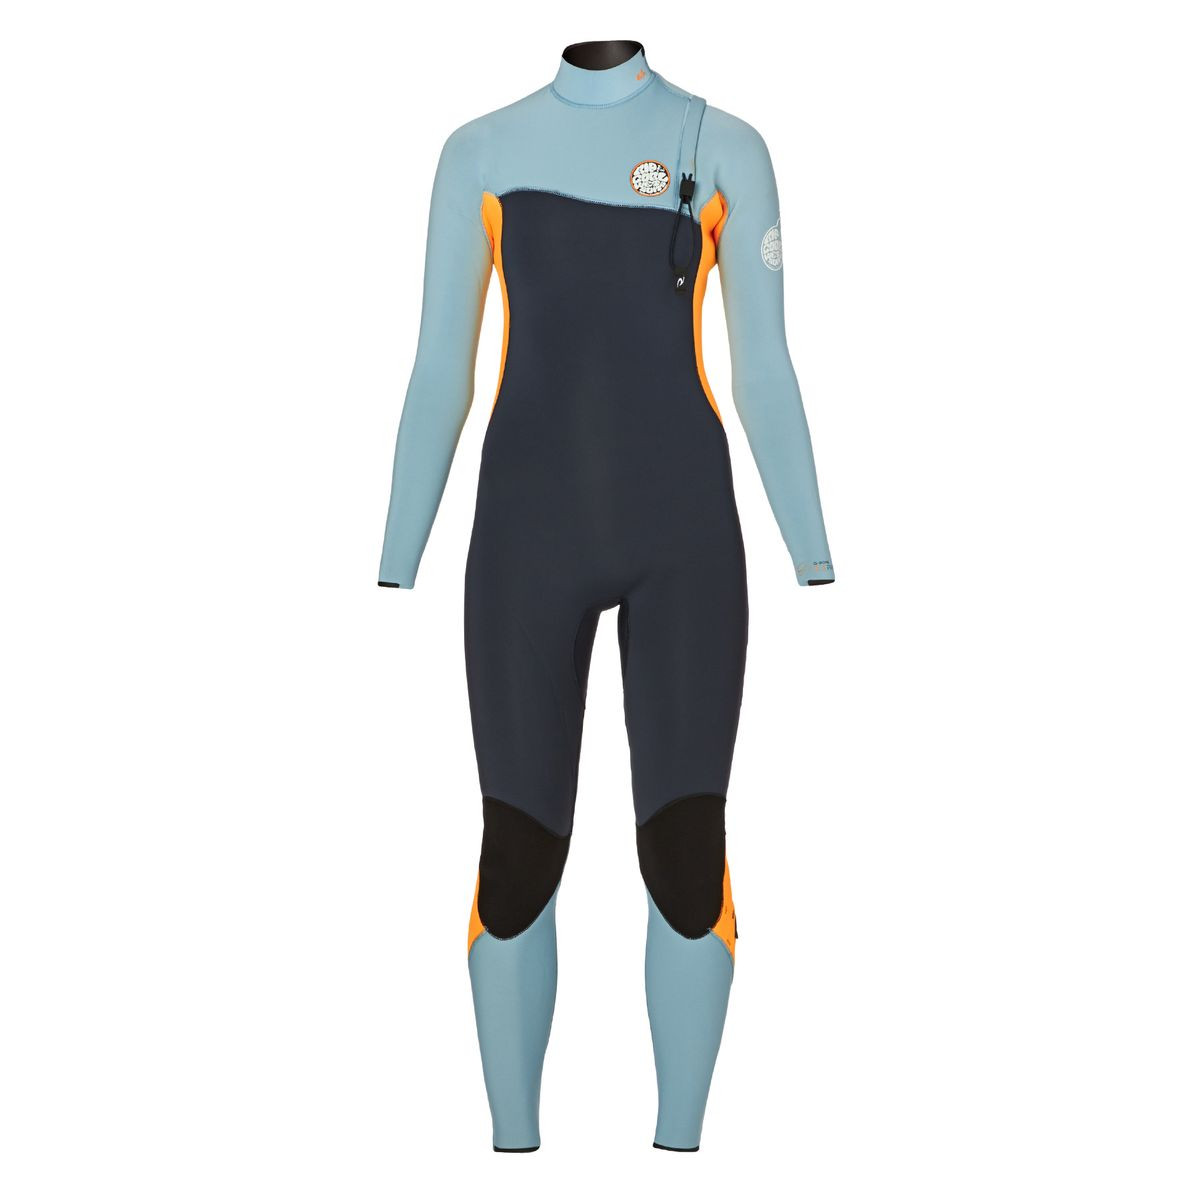 Rip Curl Womens G-Bomb 4/3mm 2017 Zipperless Wetsuit - Slate/ Orange